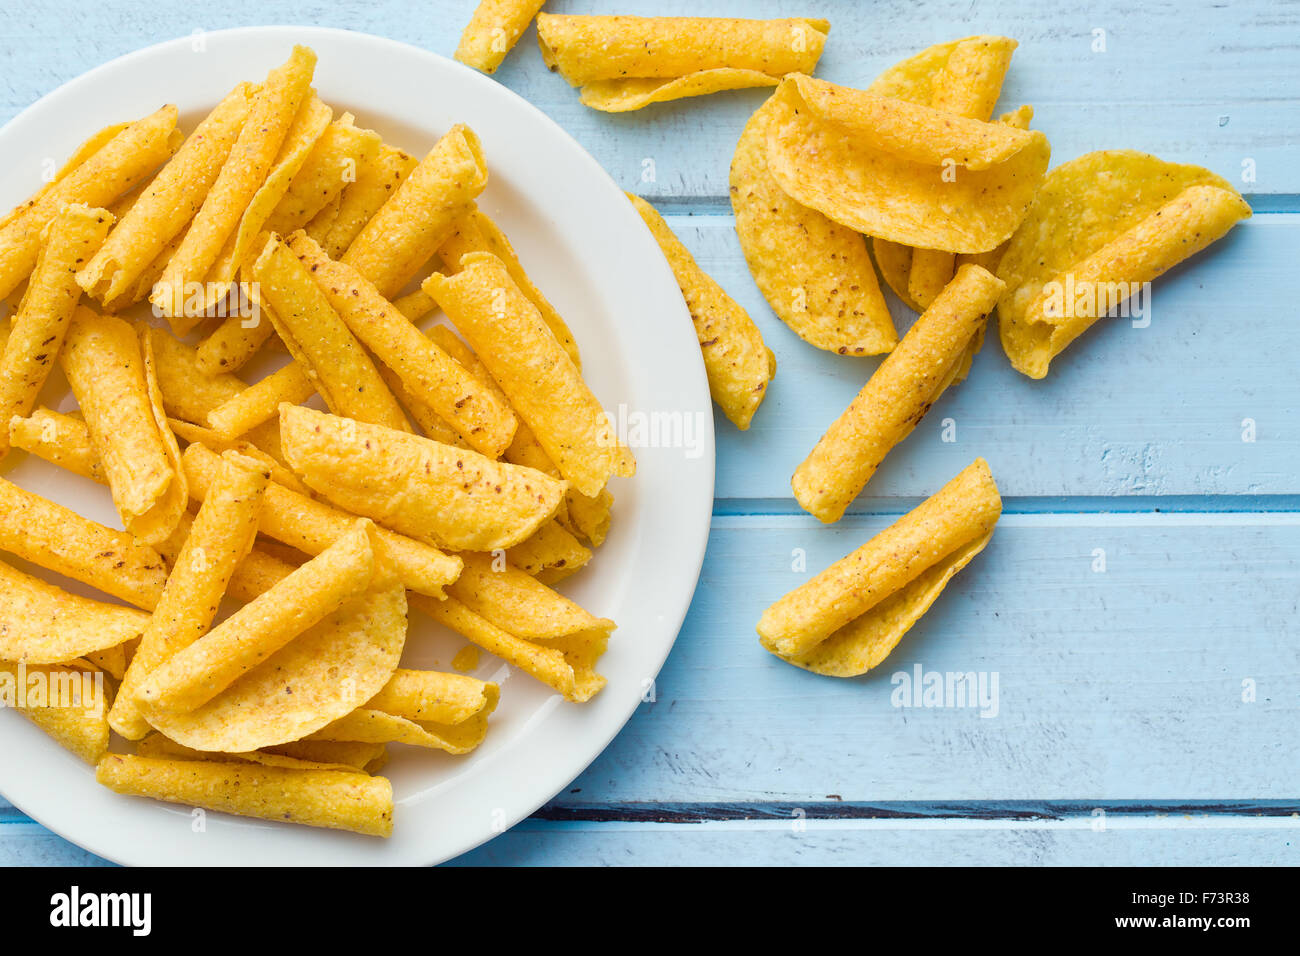 rolled nacho chips on table - Stock Image